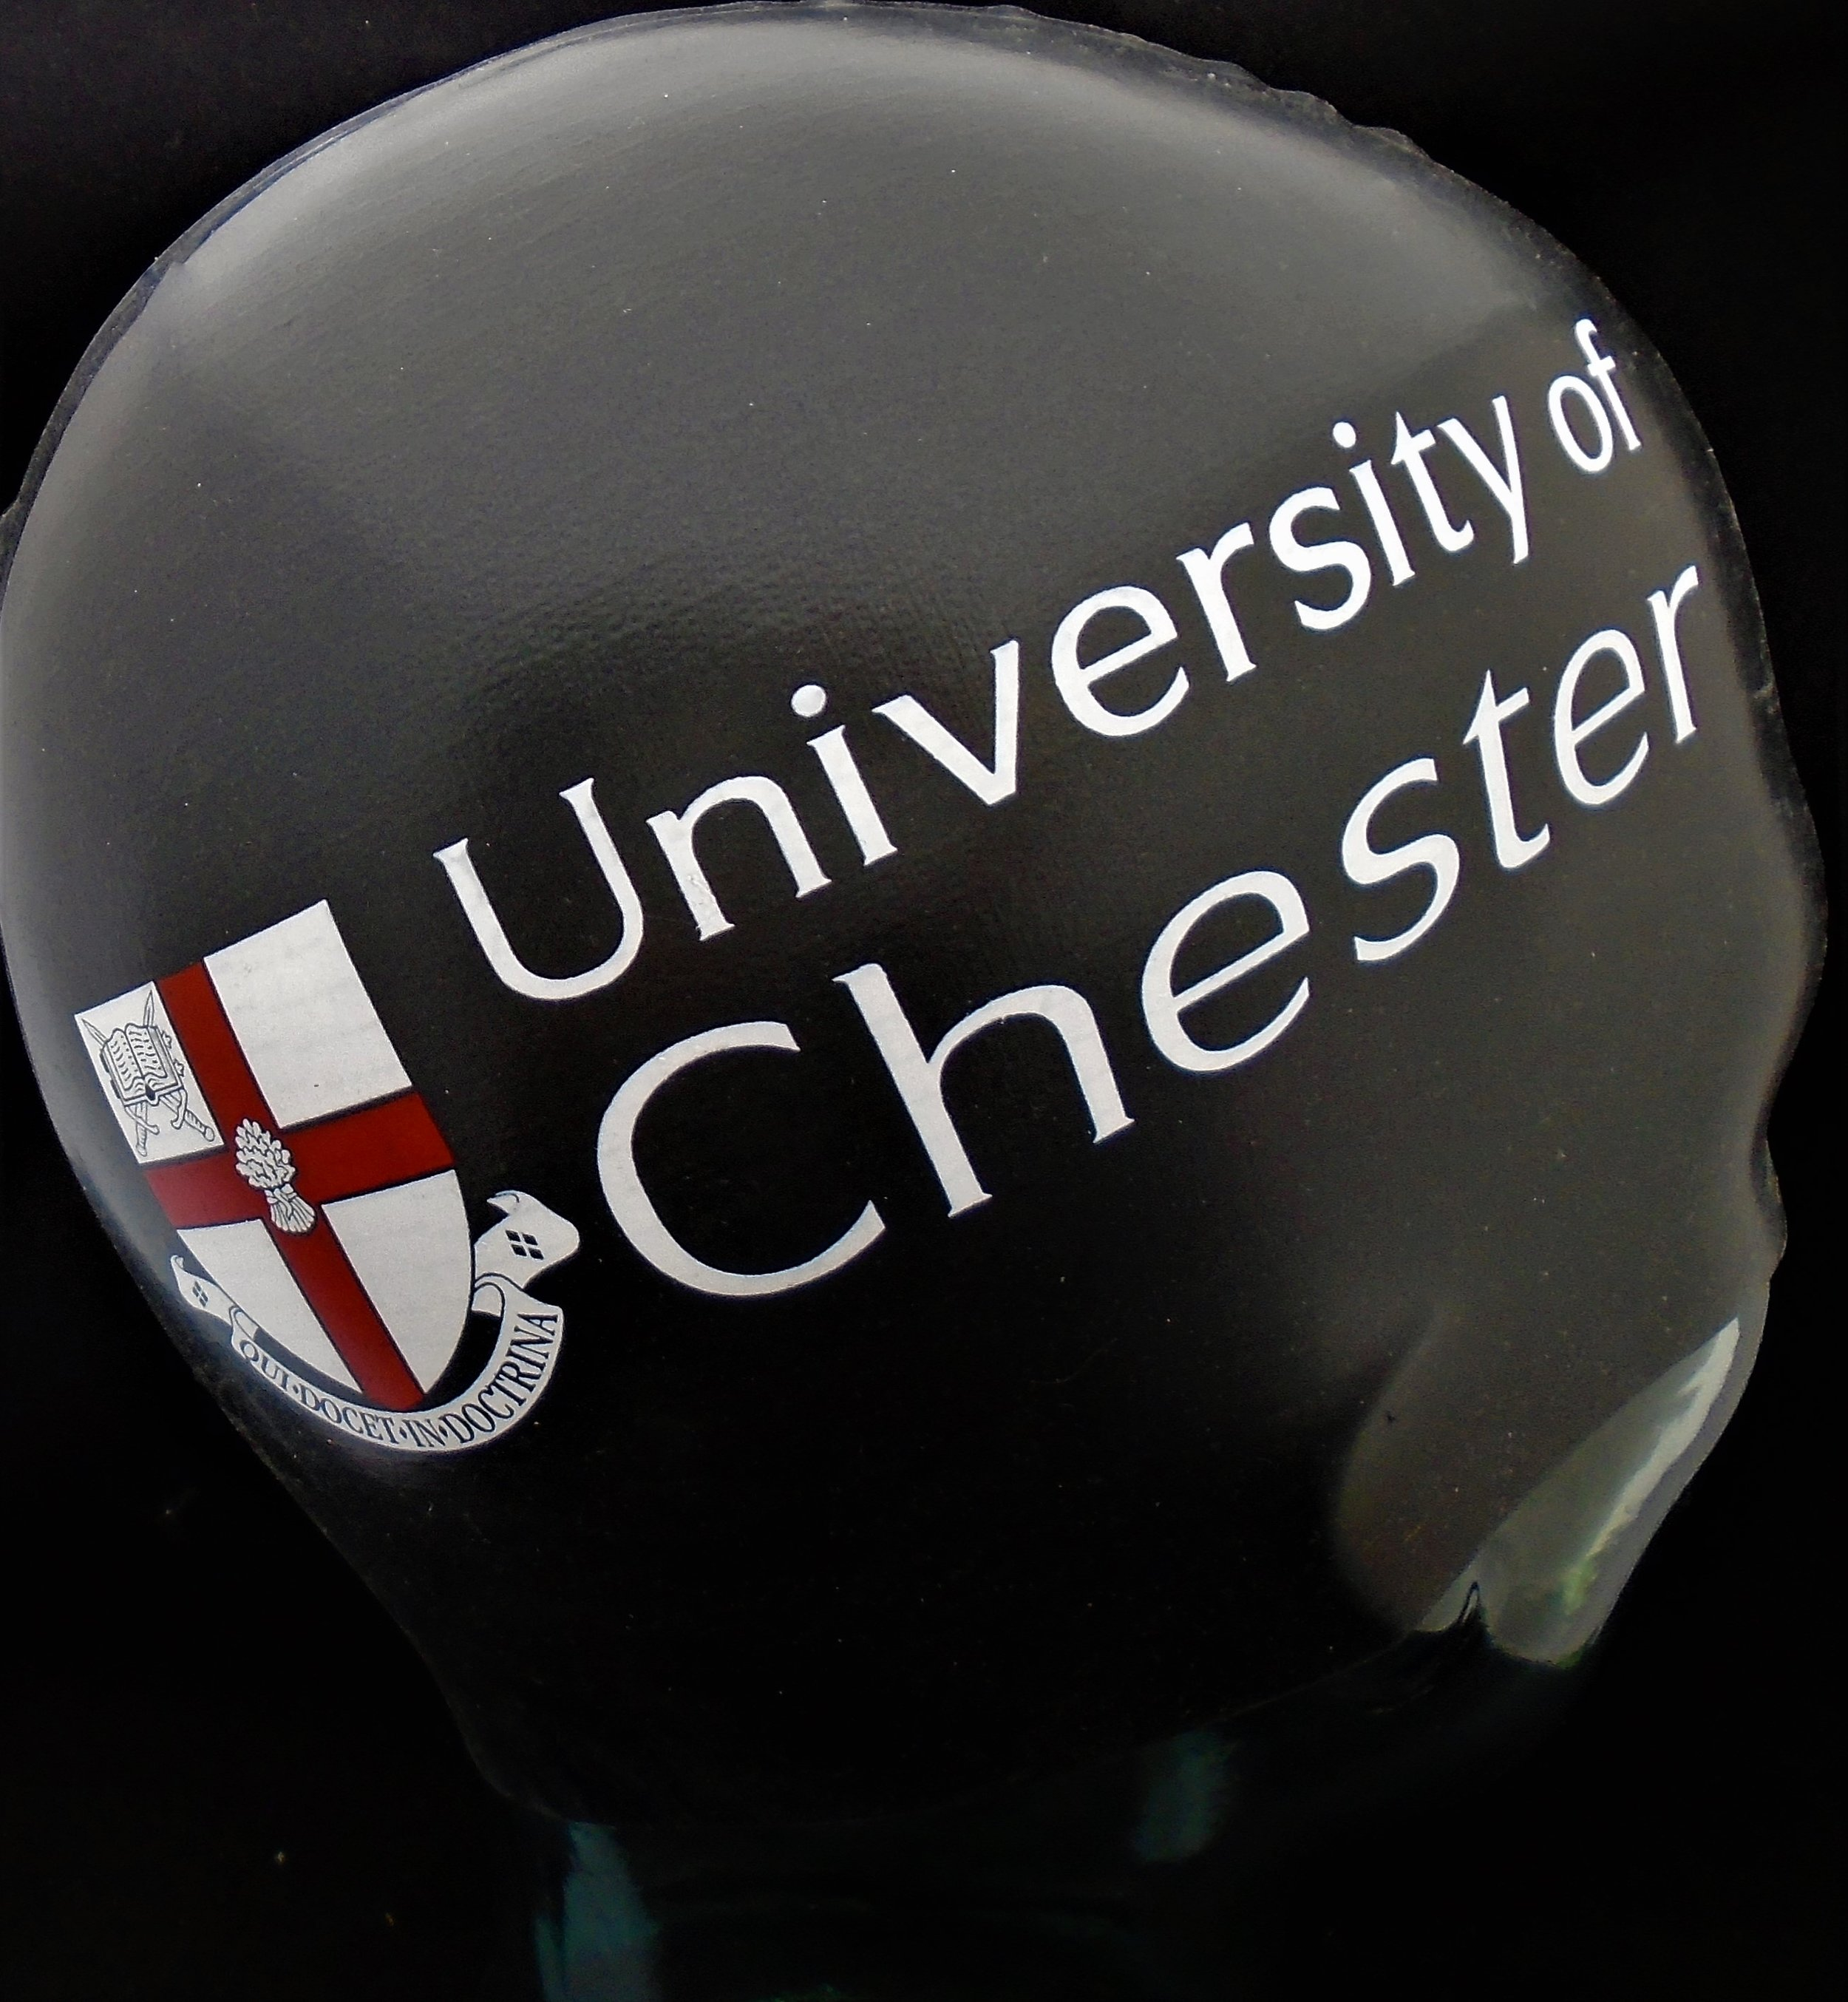 Chester Students Union side 2.jpg